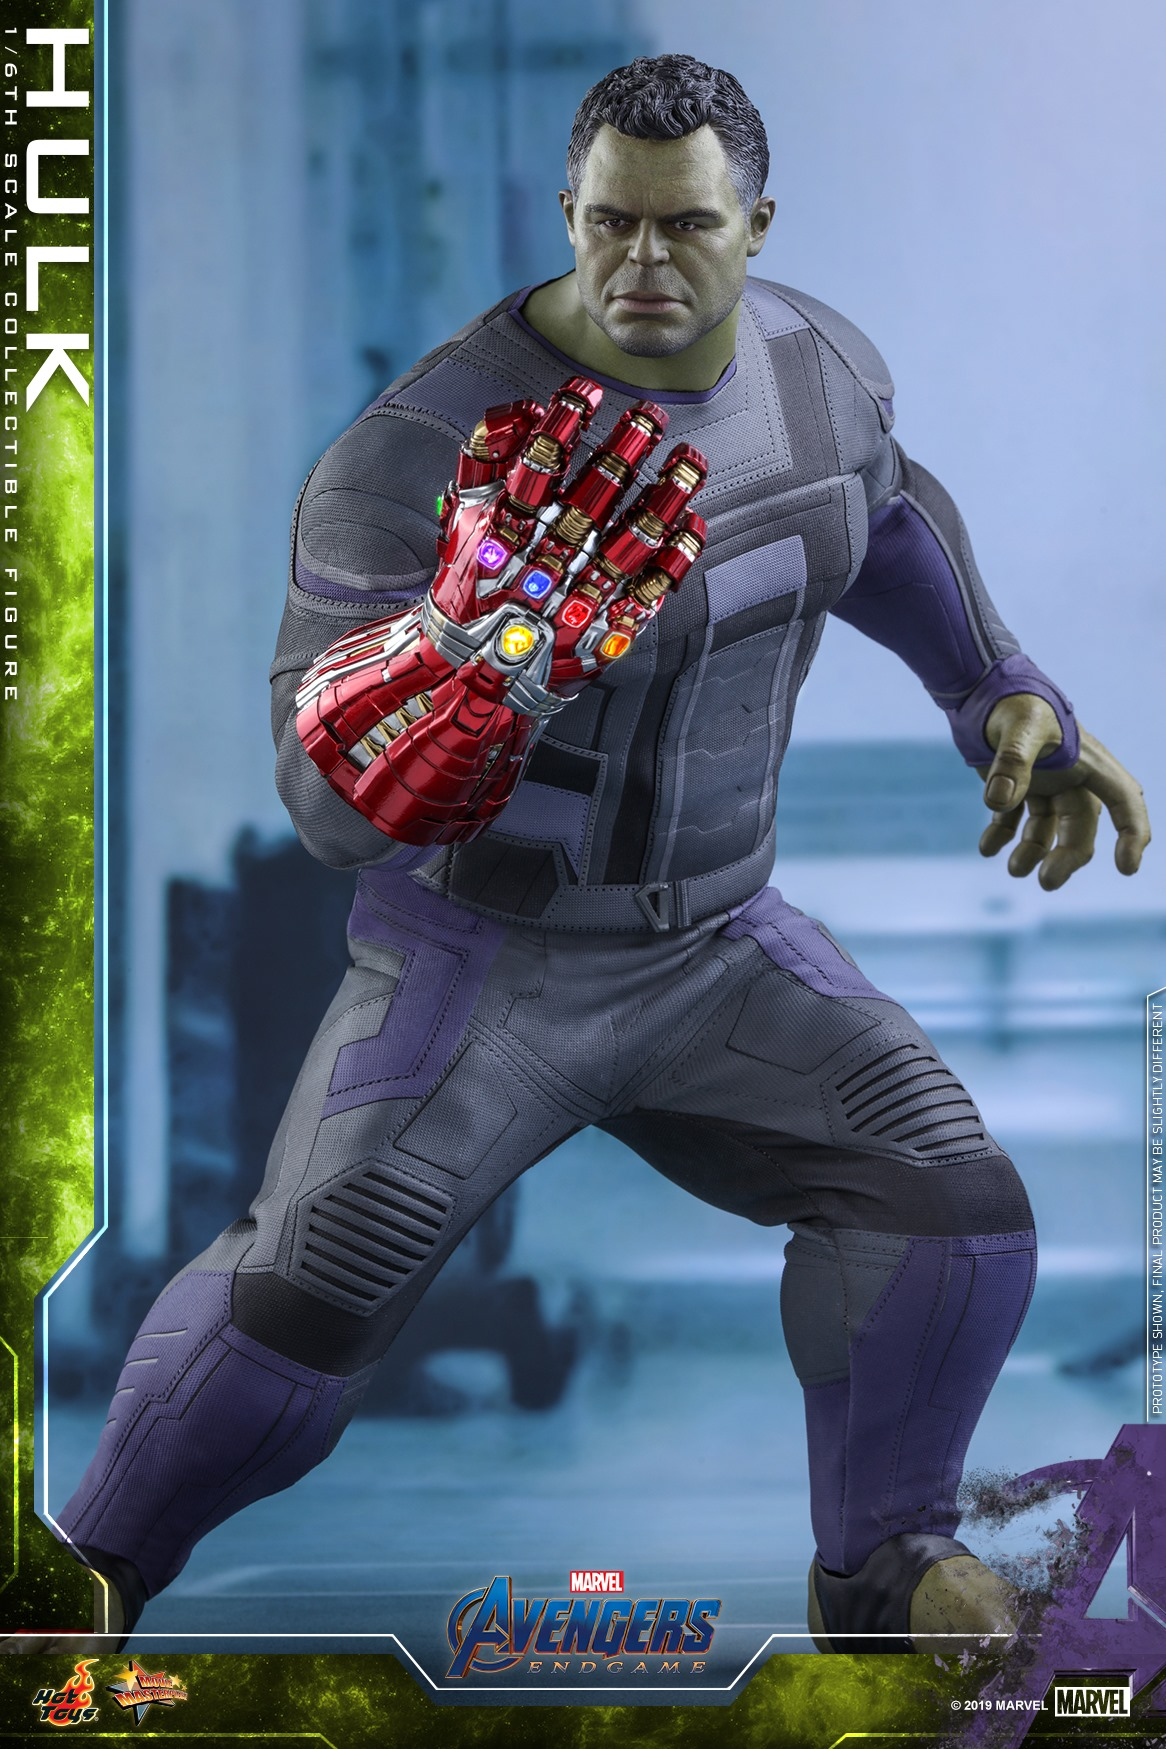 Pre-Order Hot Toys Marvel Avengers End Game Hulk Figure